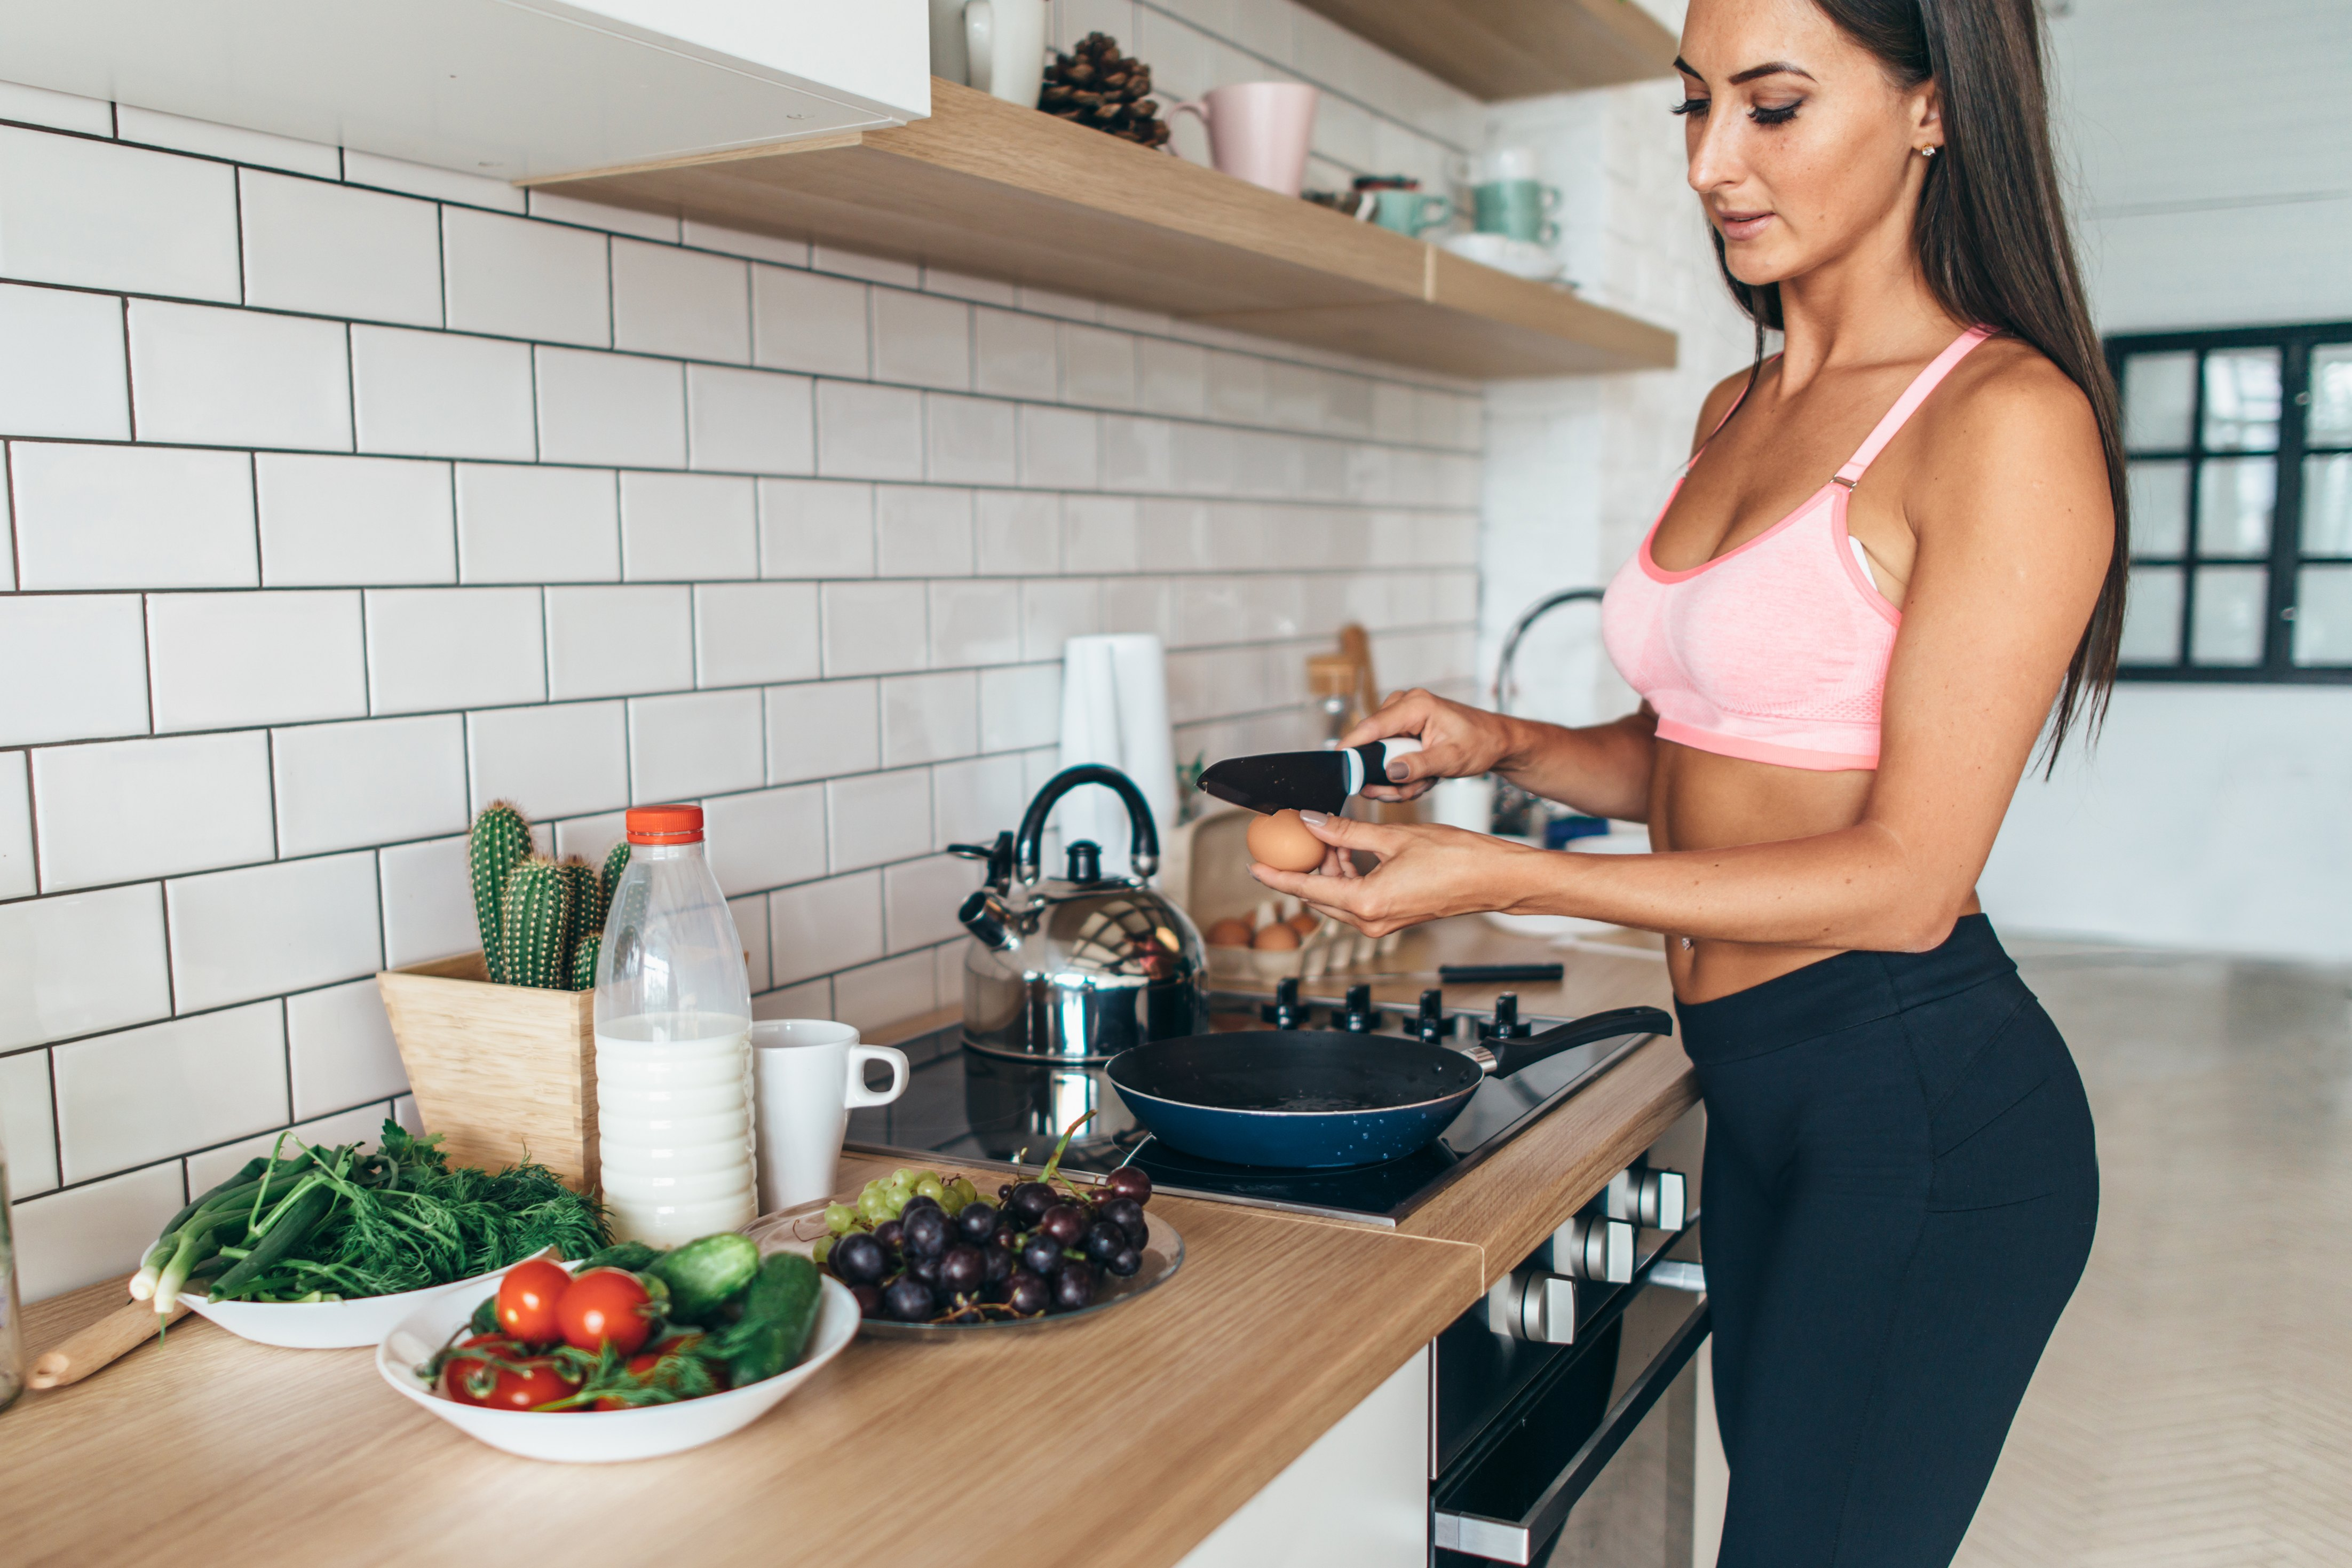 Can the Flat Belly Diet Really Zap Your Belly Fat?